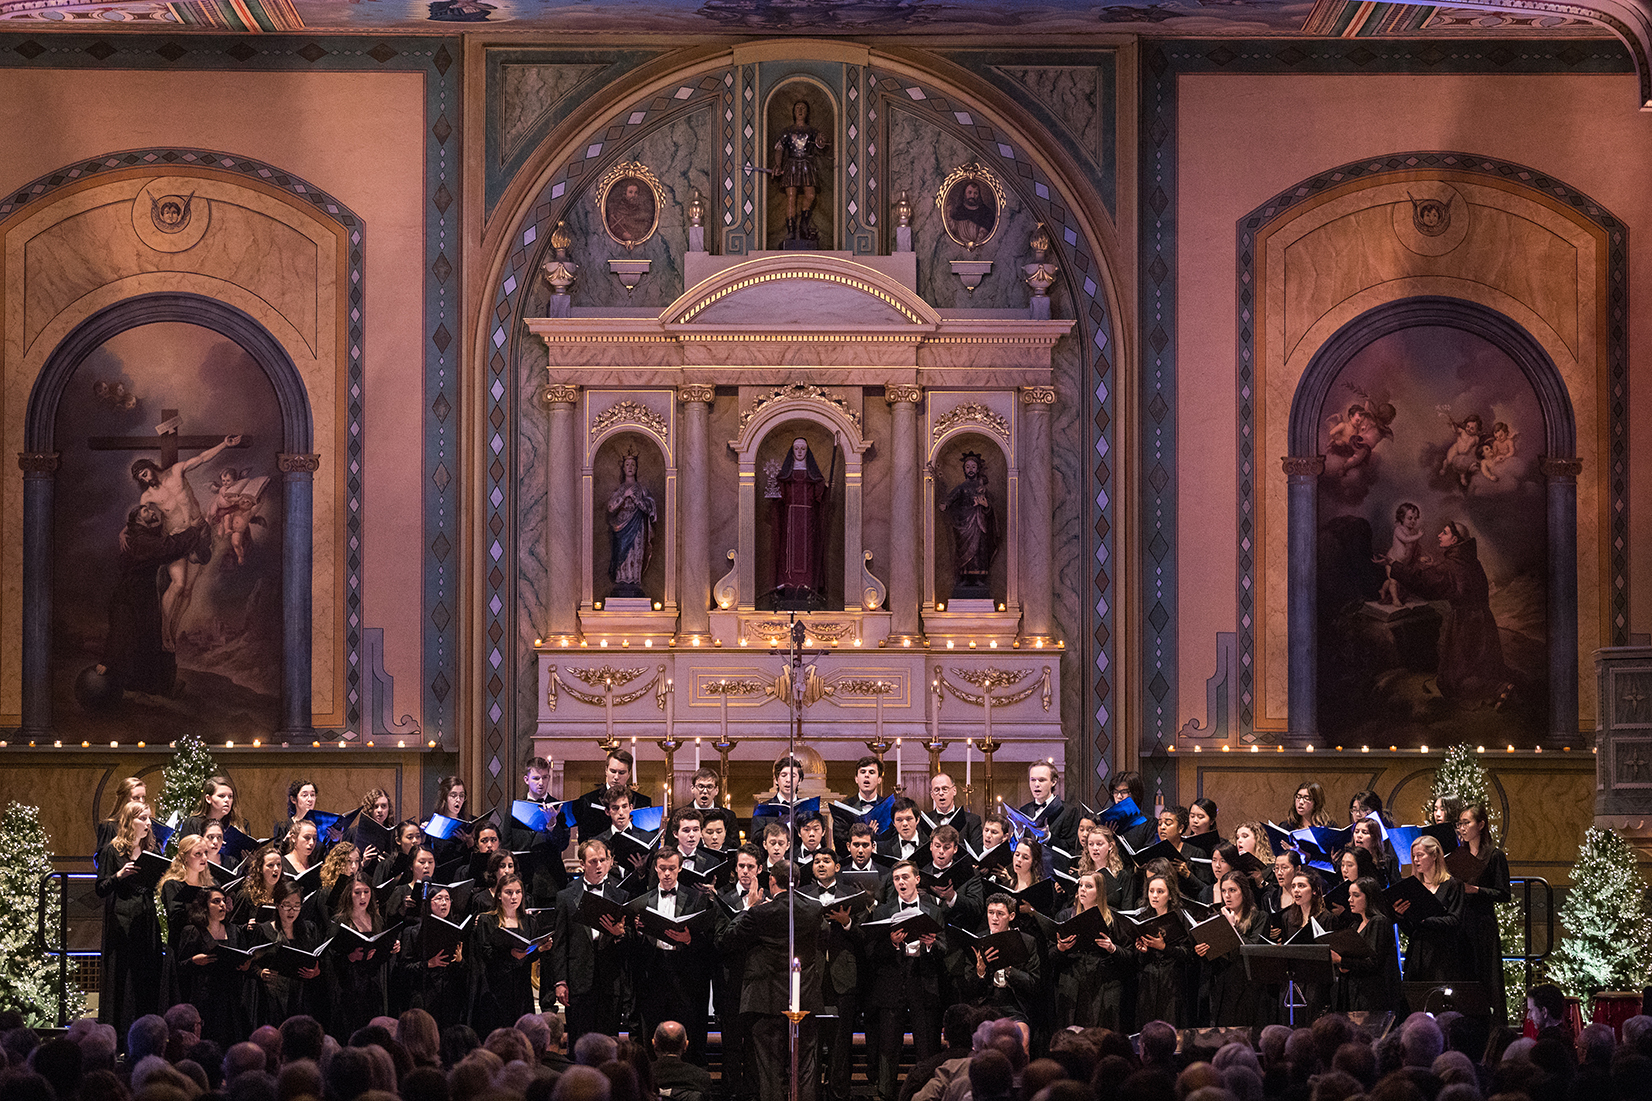 Santa Clara University's Concert Choir and Chamber Singers performed during the annual Festival of Lights Concert at the Mission Santa Clara on December 1 (photo by Stan Olszewski of SOSKIphoto)